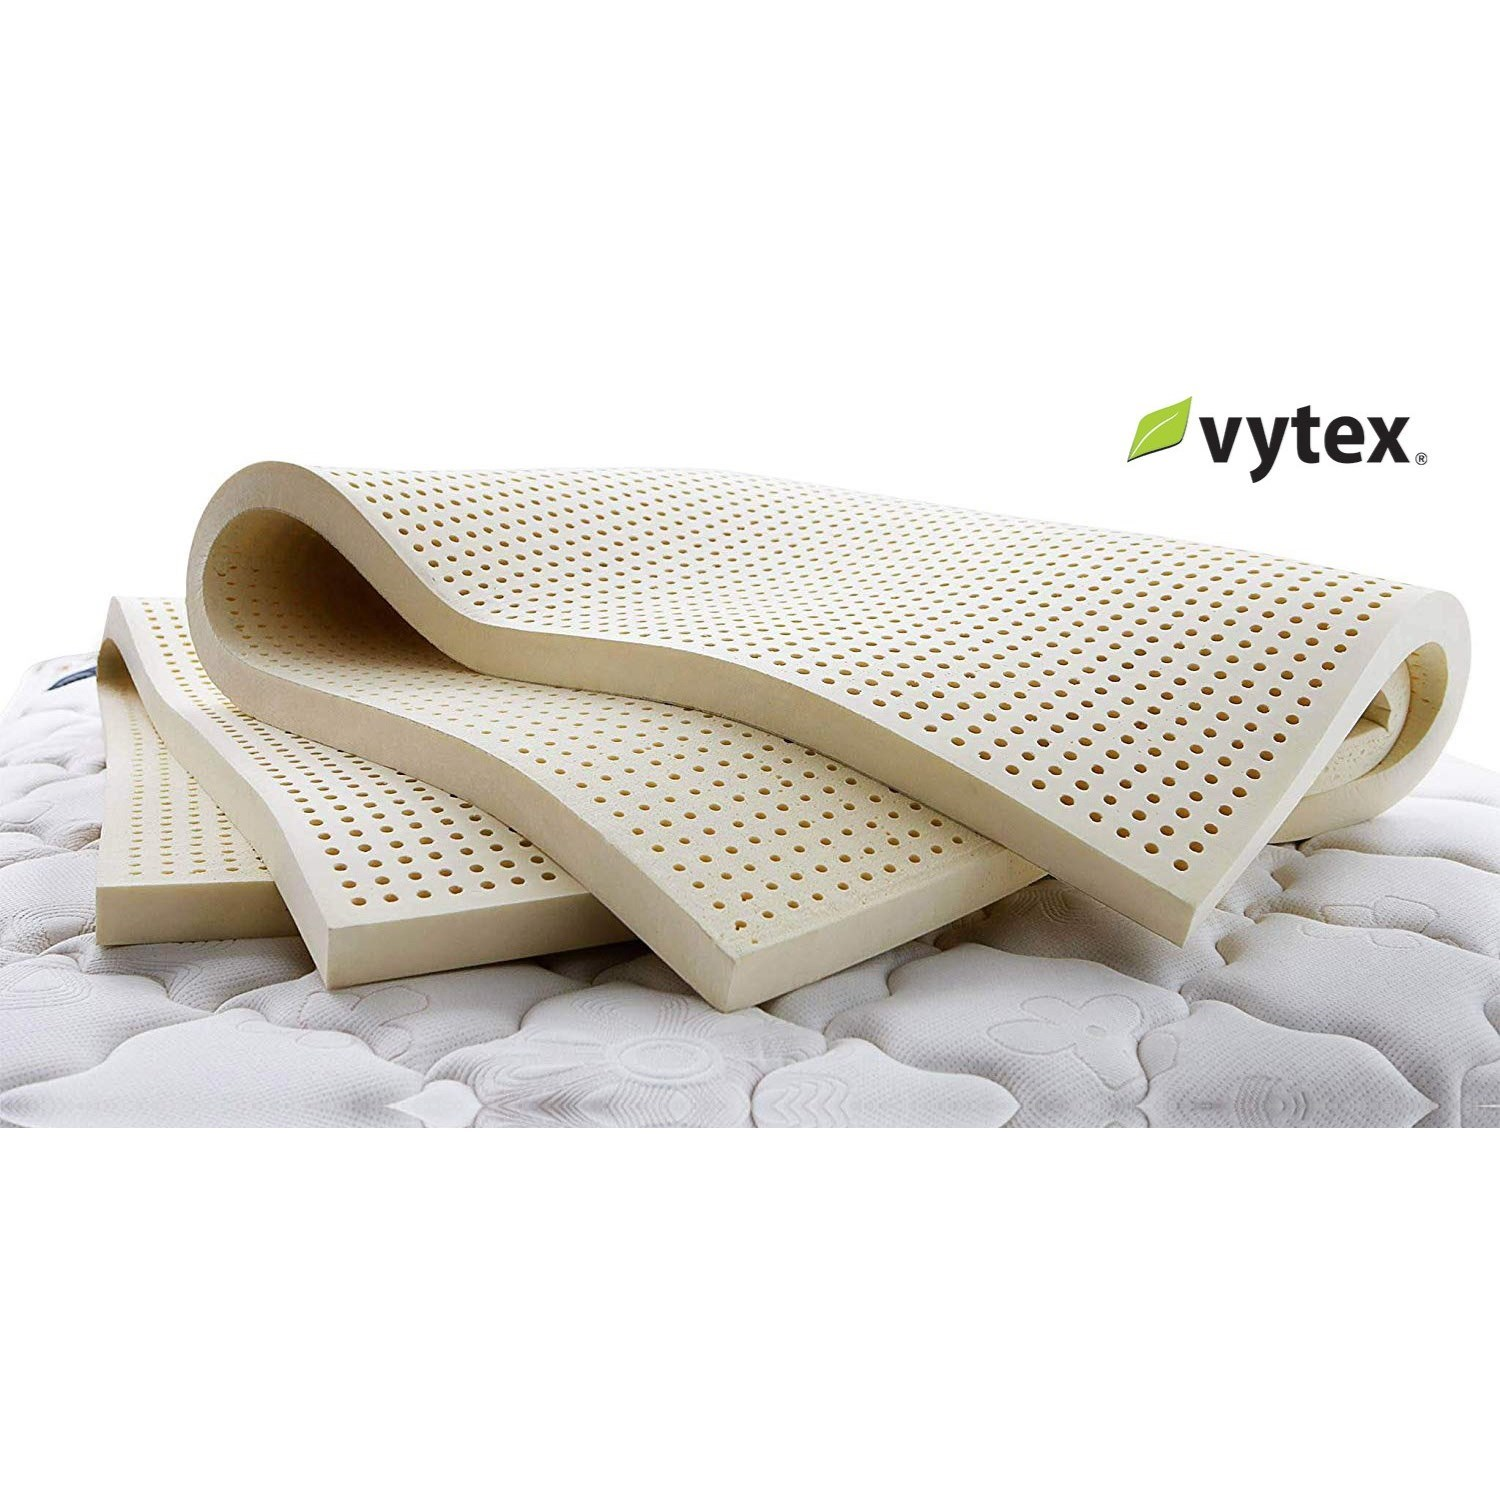 "Vytex Mattress Toppers - Medium Twin 1"" Medium Latex Mattress Topper by Vytex at Rotmans"